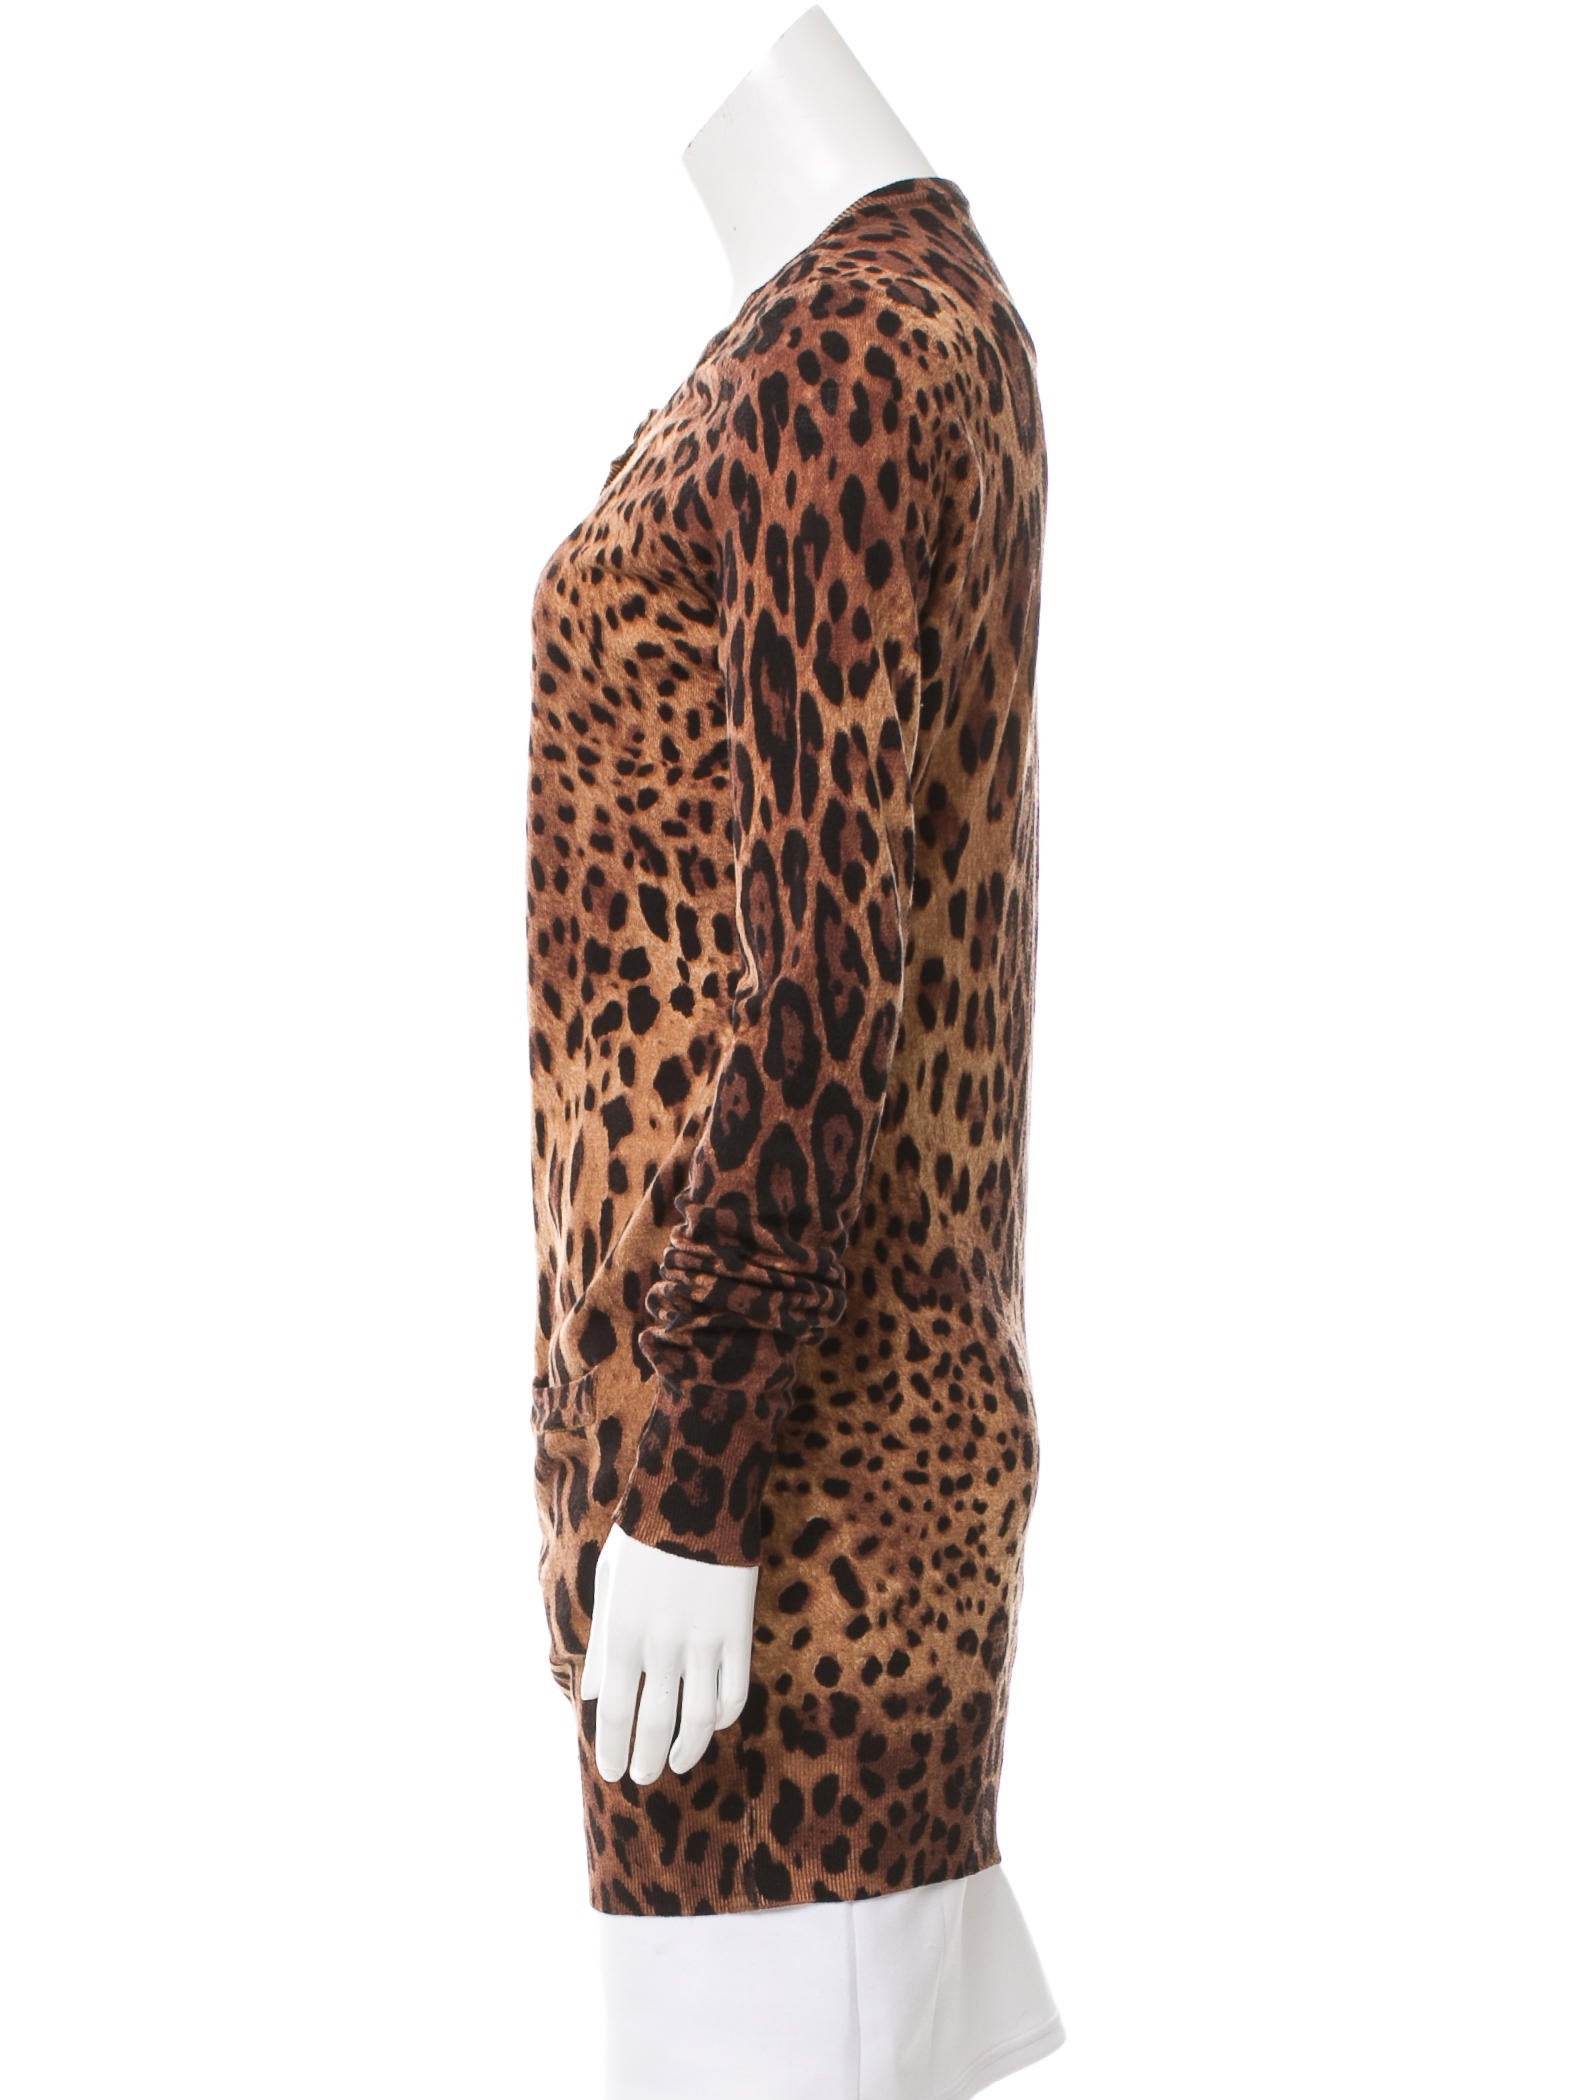 Find leopard print cardigan at ShopStyle. Shop the latest collection of leopard print cardigan from the most popular stores - all in one place.